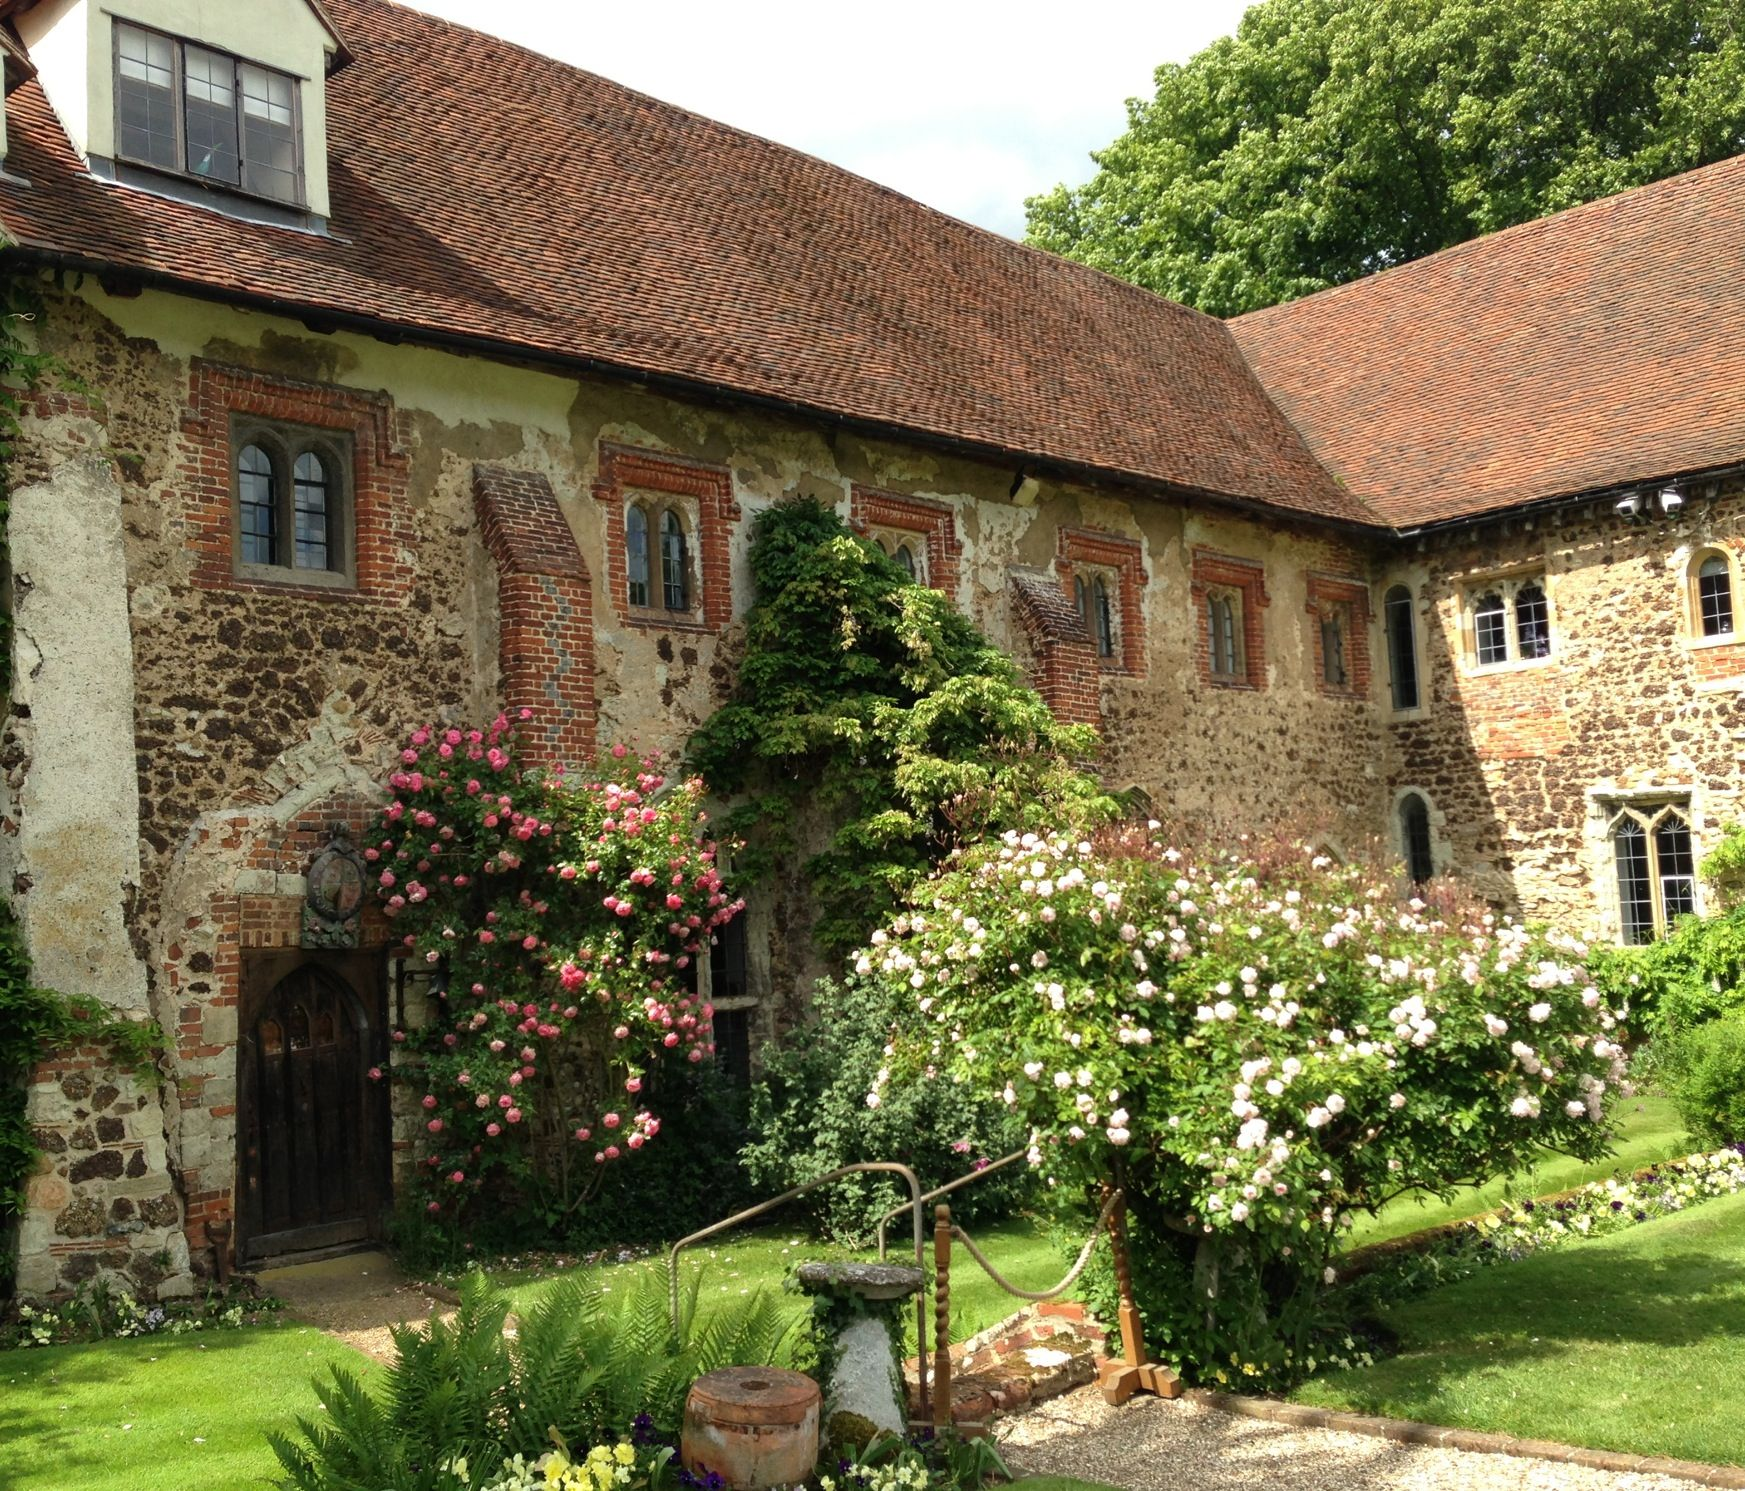 Beeleigh Abbey Maldon Essex With Its Beautiful Gardens Beautiful Buildings Maldon Beautiful Gardens